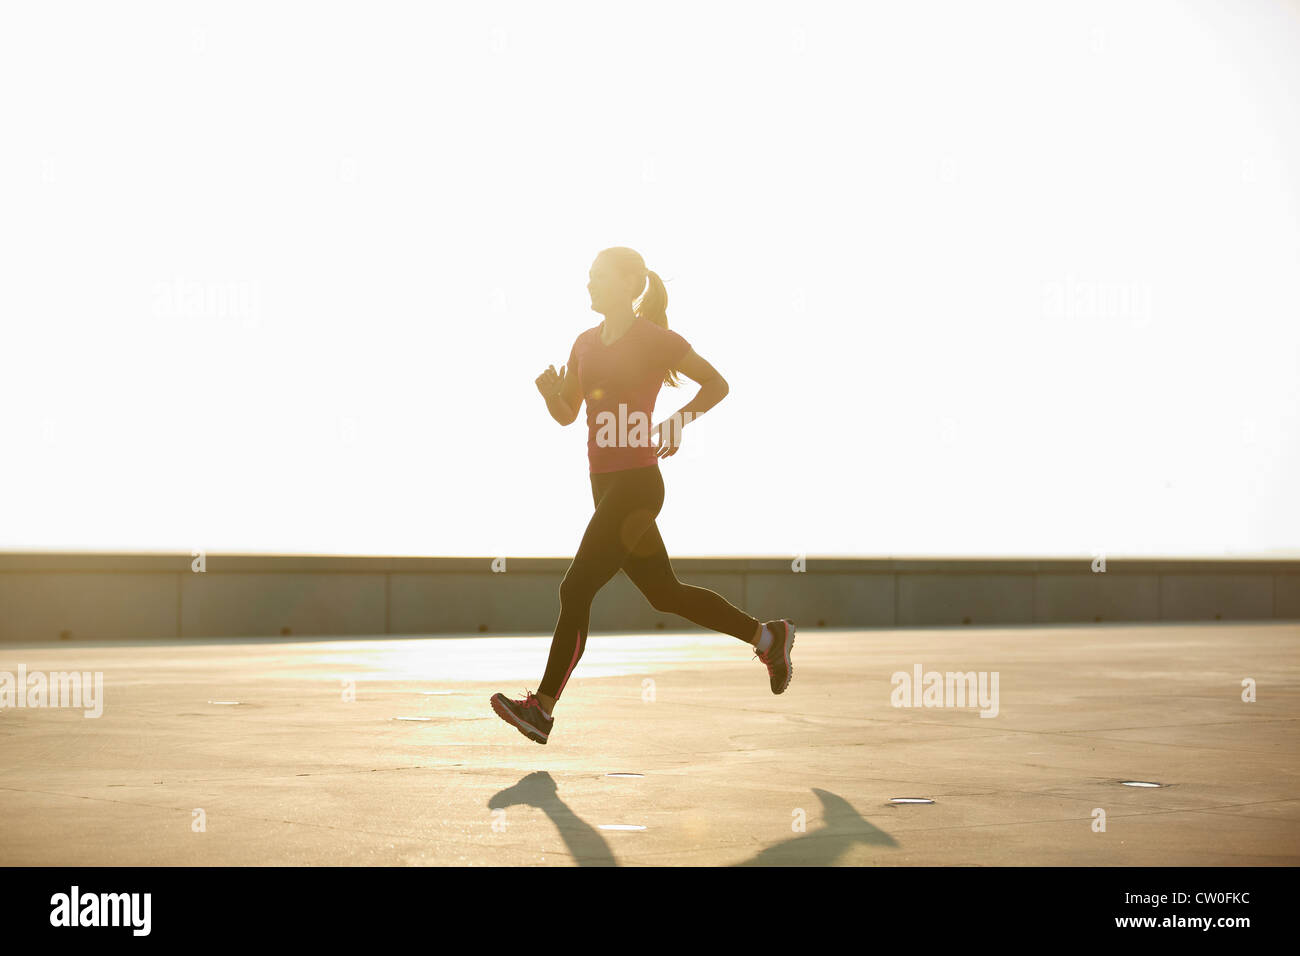 Woman running on rooftop - Stock Image